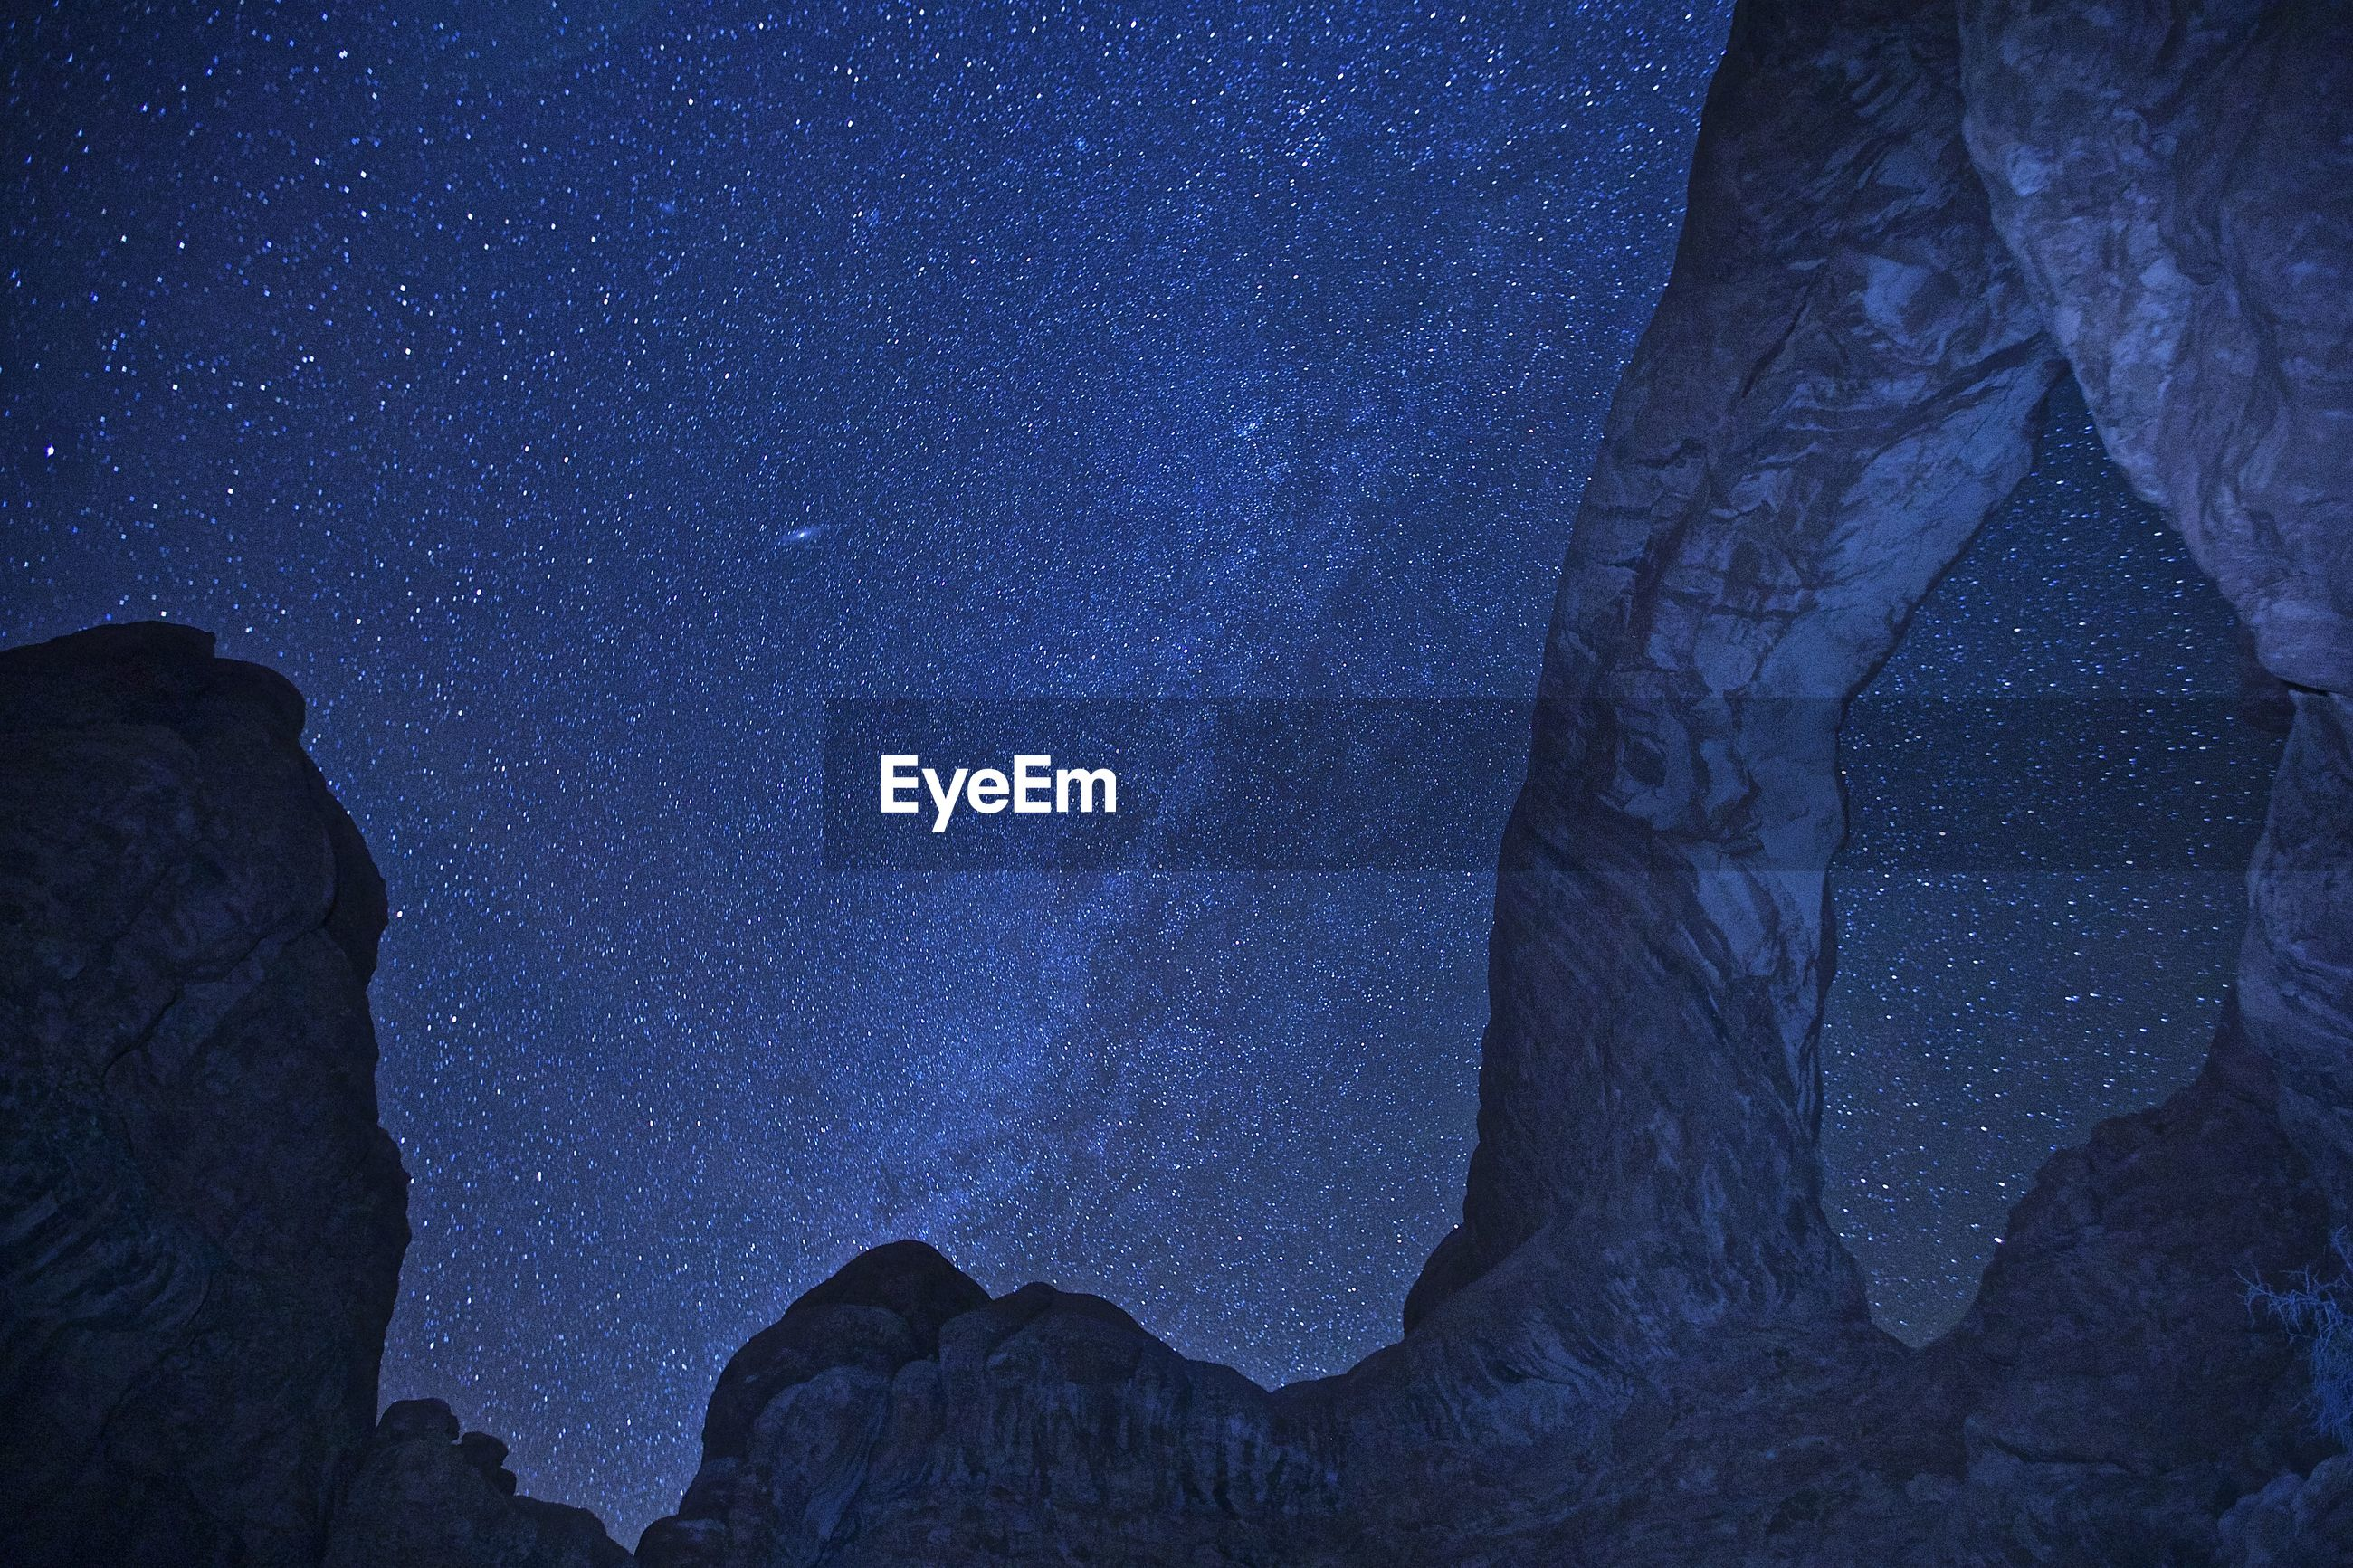 Low angle view of rock formation against star field at night